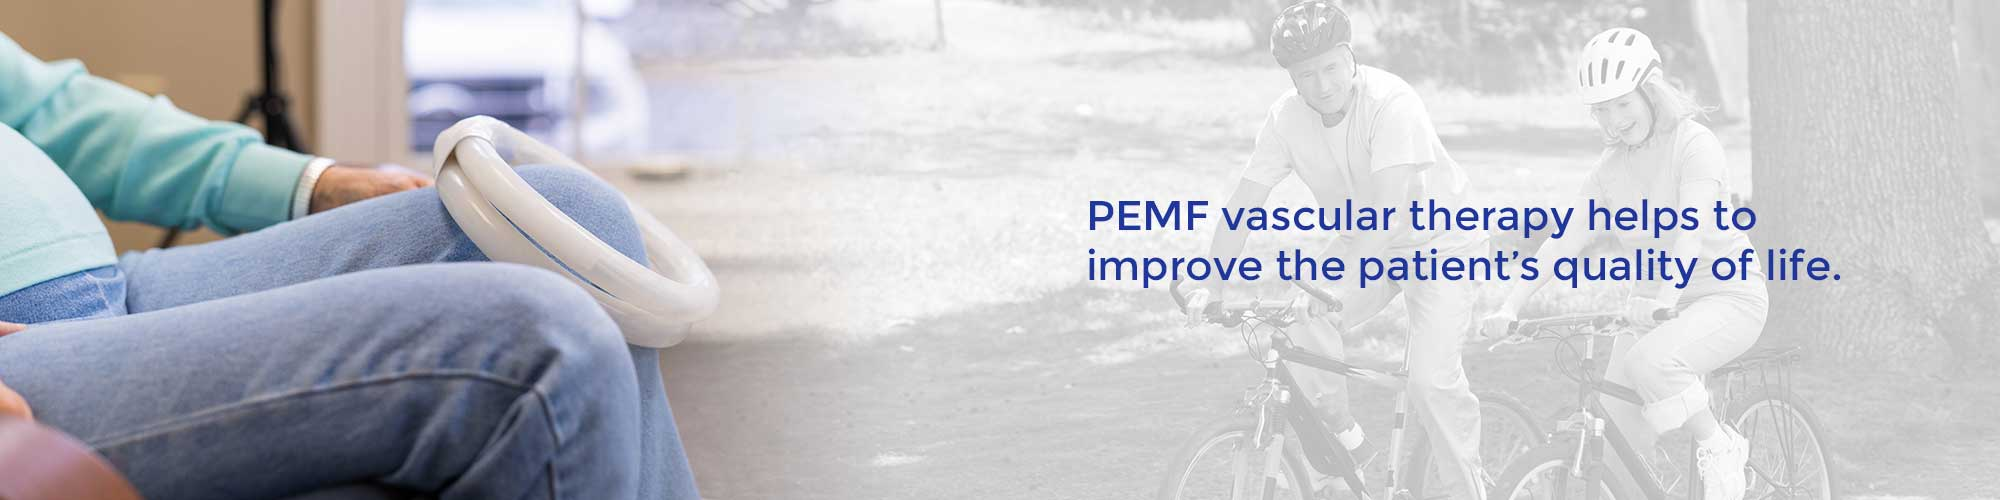 PEMF vascular therapy helps to improve the patient's quality of life.